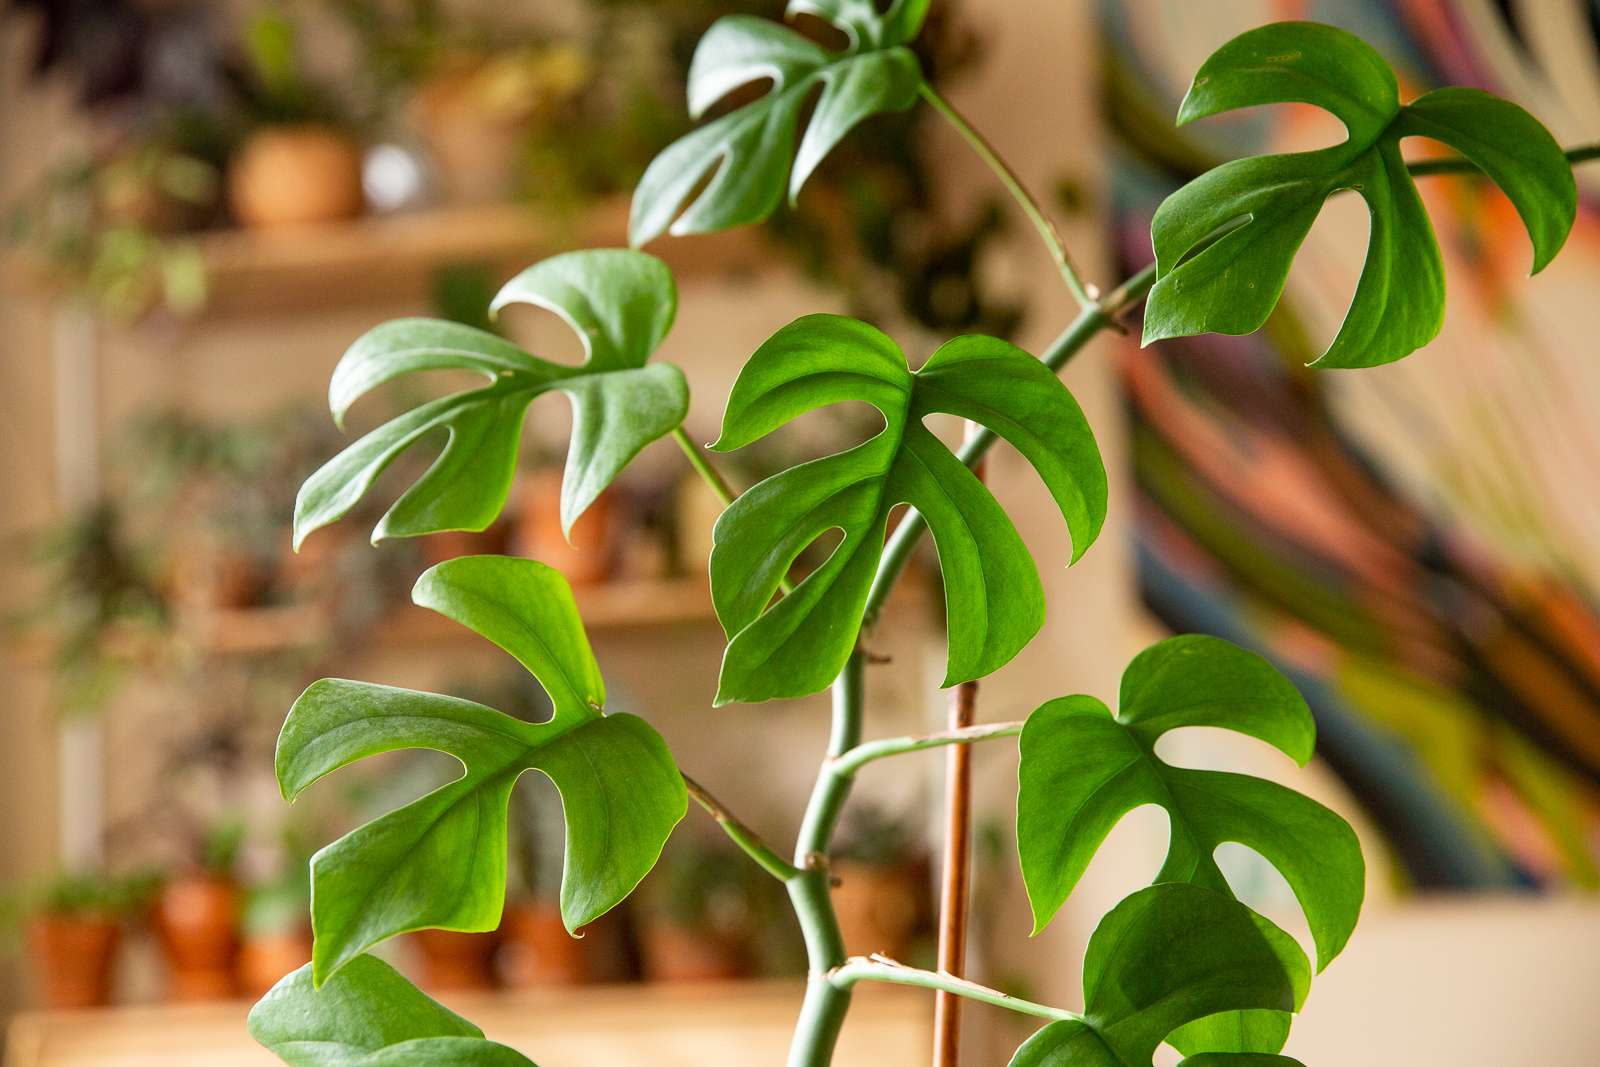 Philodendron minima houseplant with small Swiss cheese shaped leaves on thin stem